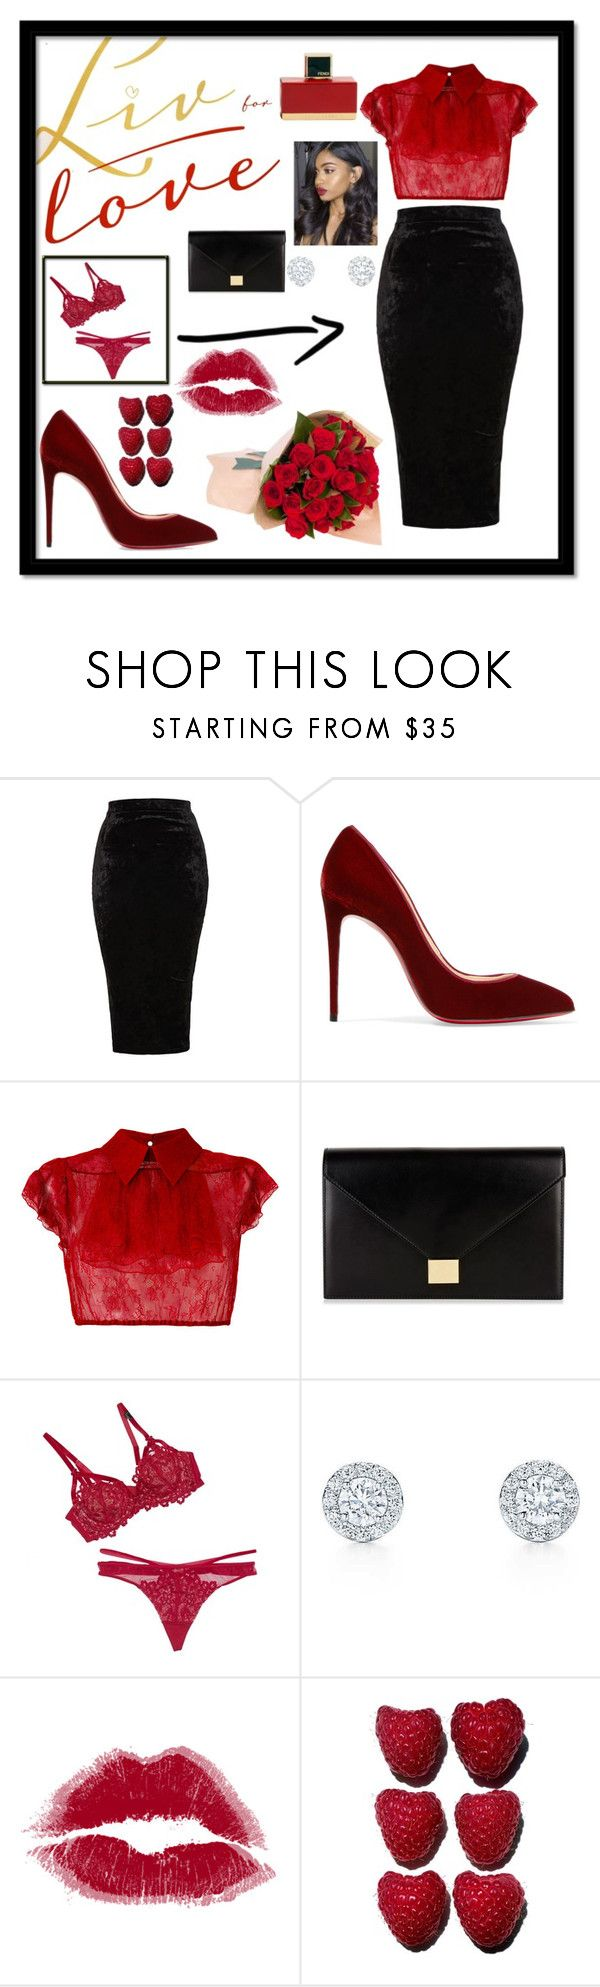 """Dinner Date on V-Day"" by eslajosy ❤ liked on Polyvore featuring TFNC, Christian Louboutin, N°21, Victoria Beckham, Dita Von Teese and Fendi"